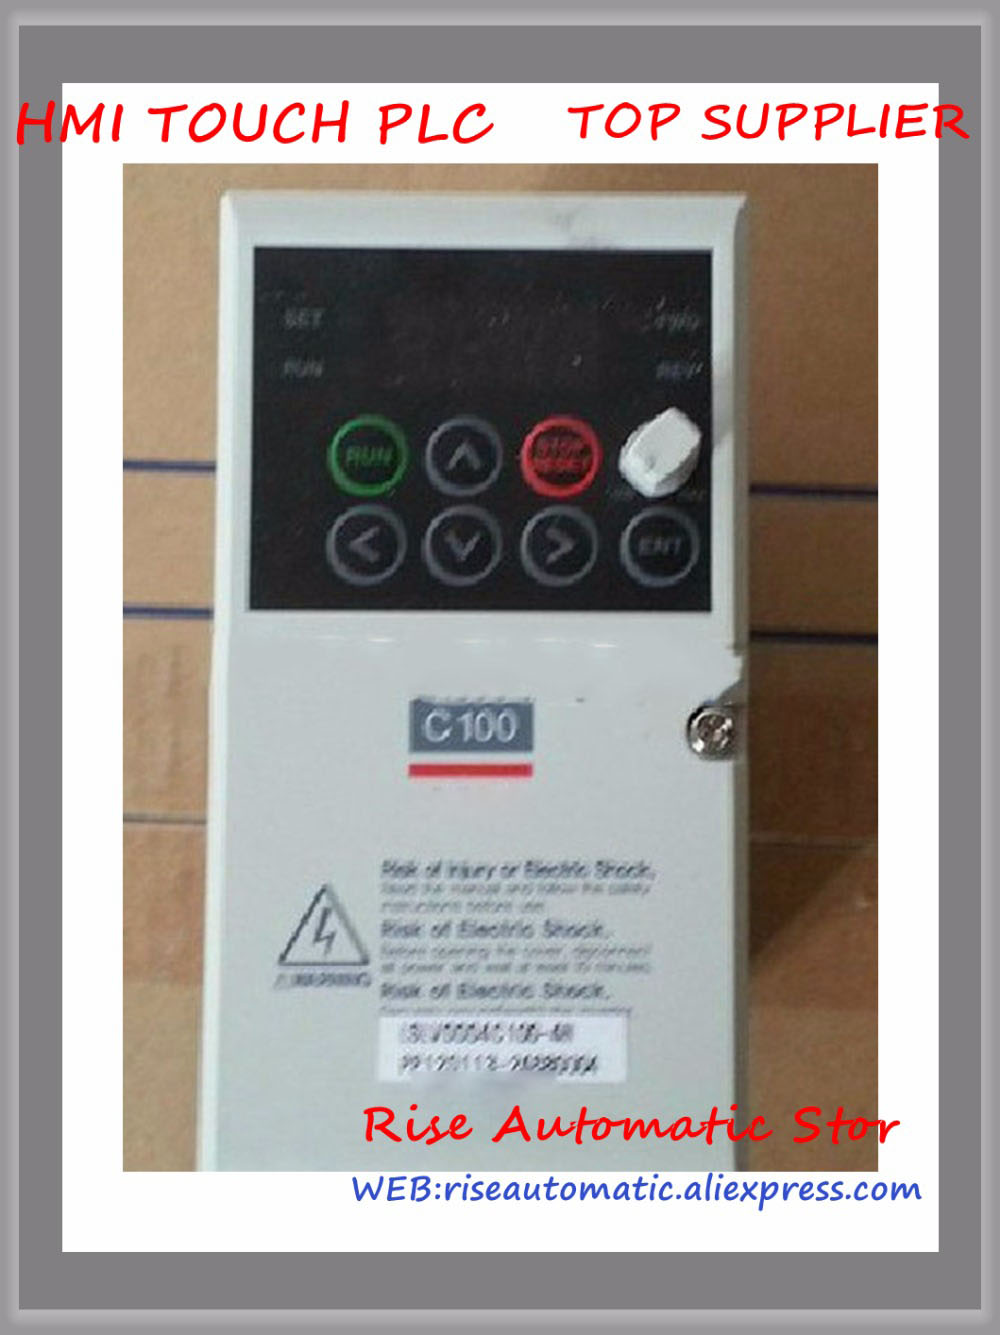 LSLV0001C100-1N new 0.1kW 1 Phase 200V Inverter VFD frequency AC driveLSLV0001C100-1N new 0.1kW 1 Phase 200V Inverter VFD frequency AC drive